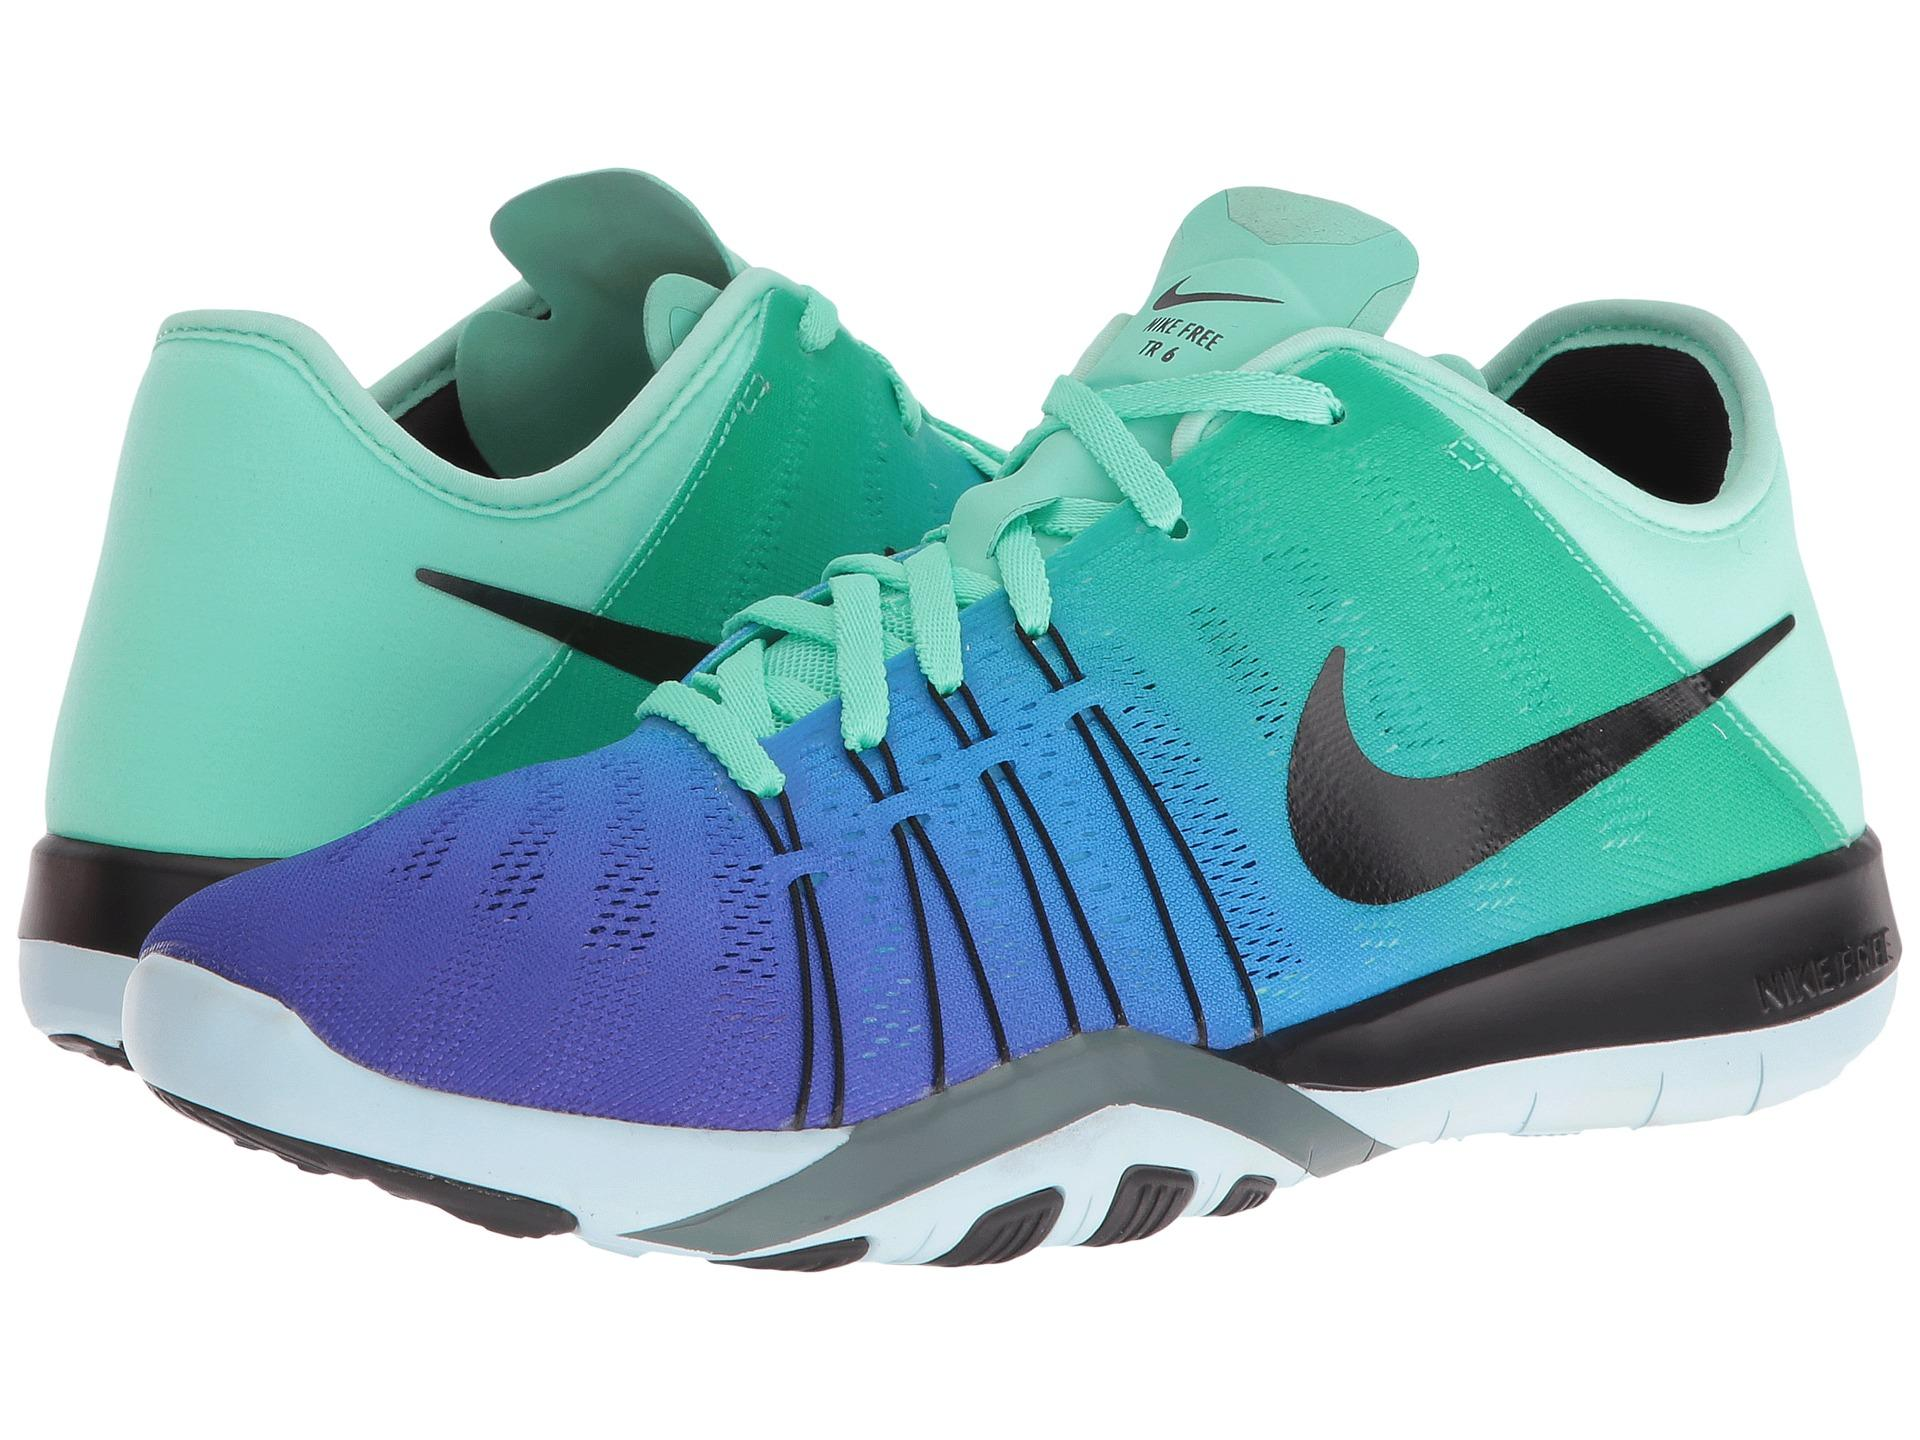 outlet store bafce 0bb5c Lyst - Nike Free Tr 6 Spectrum